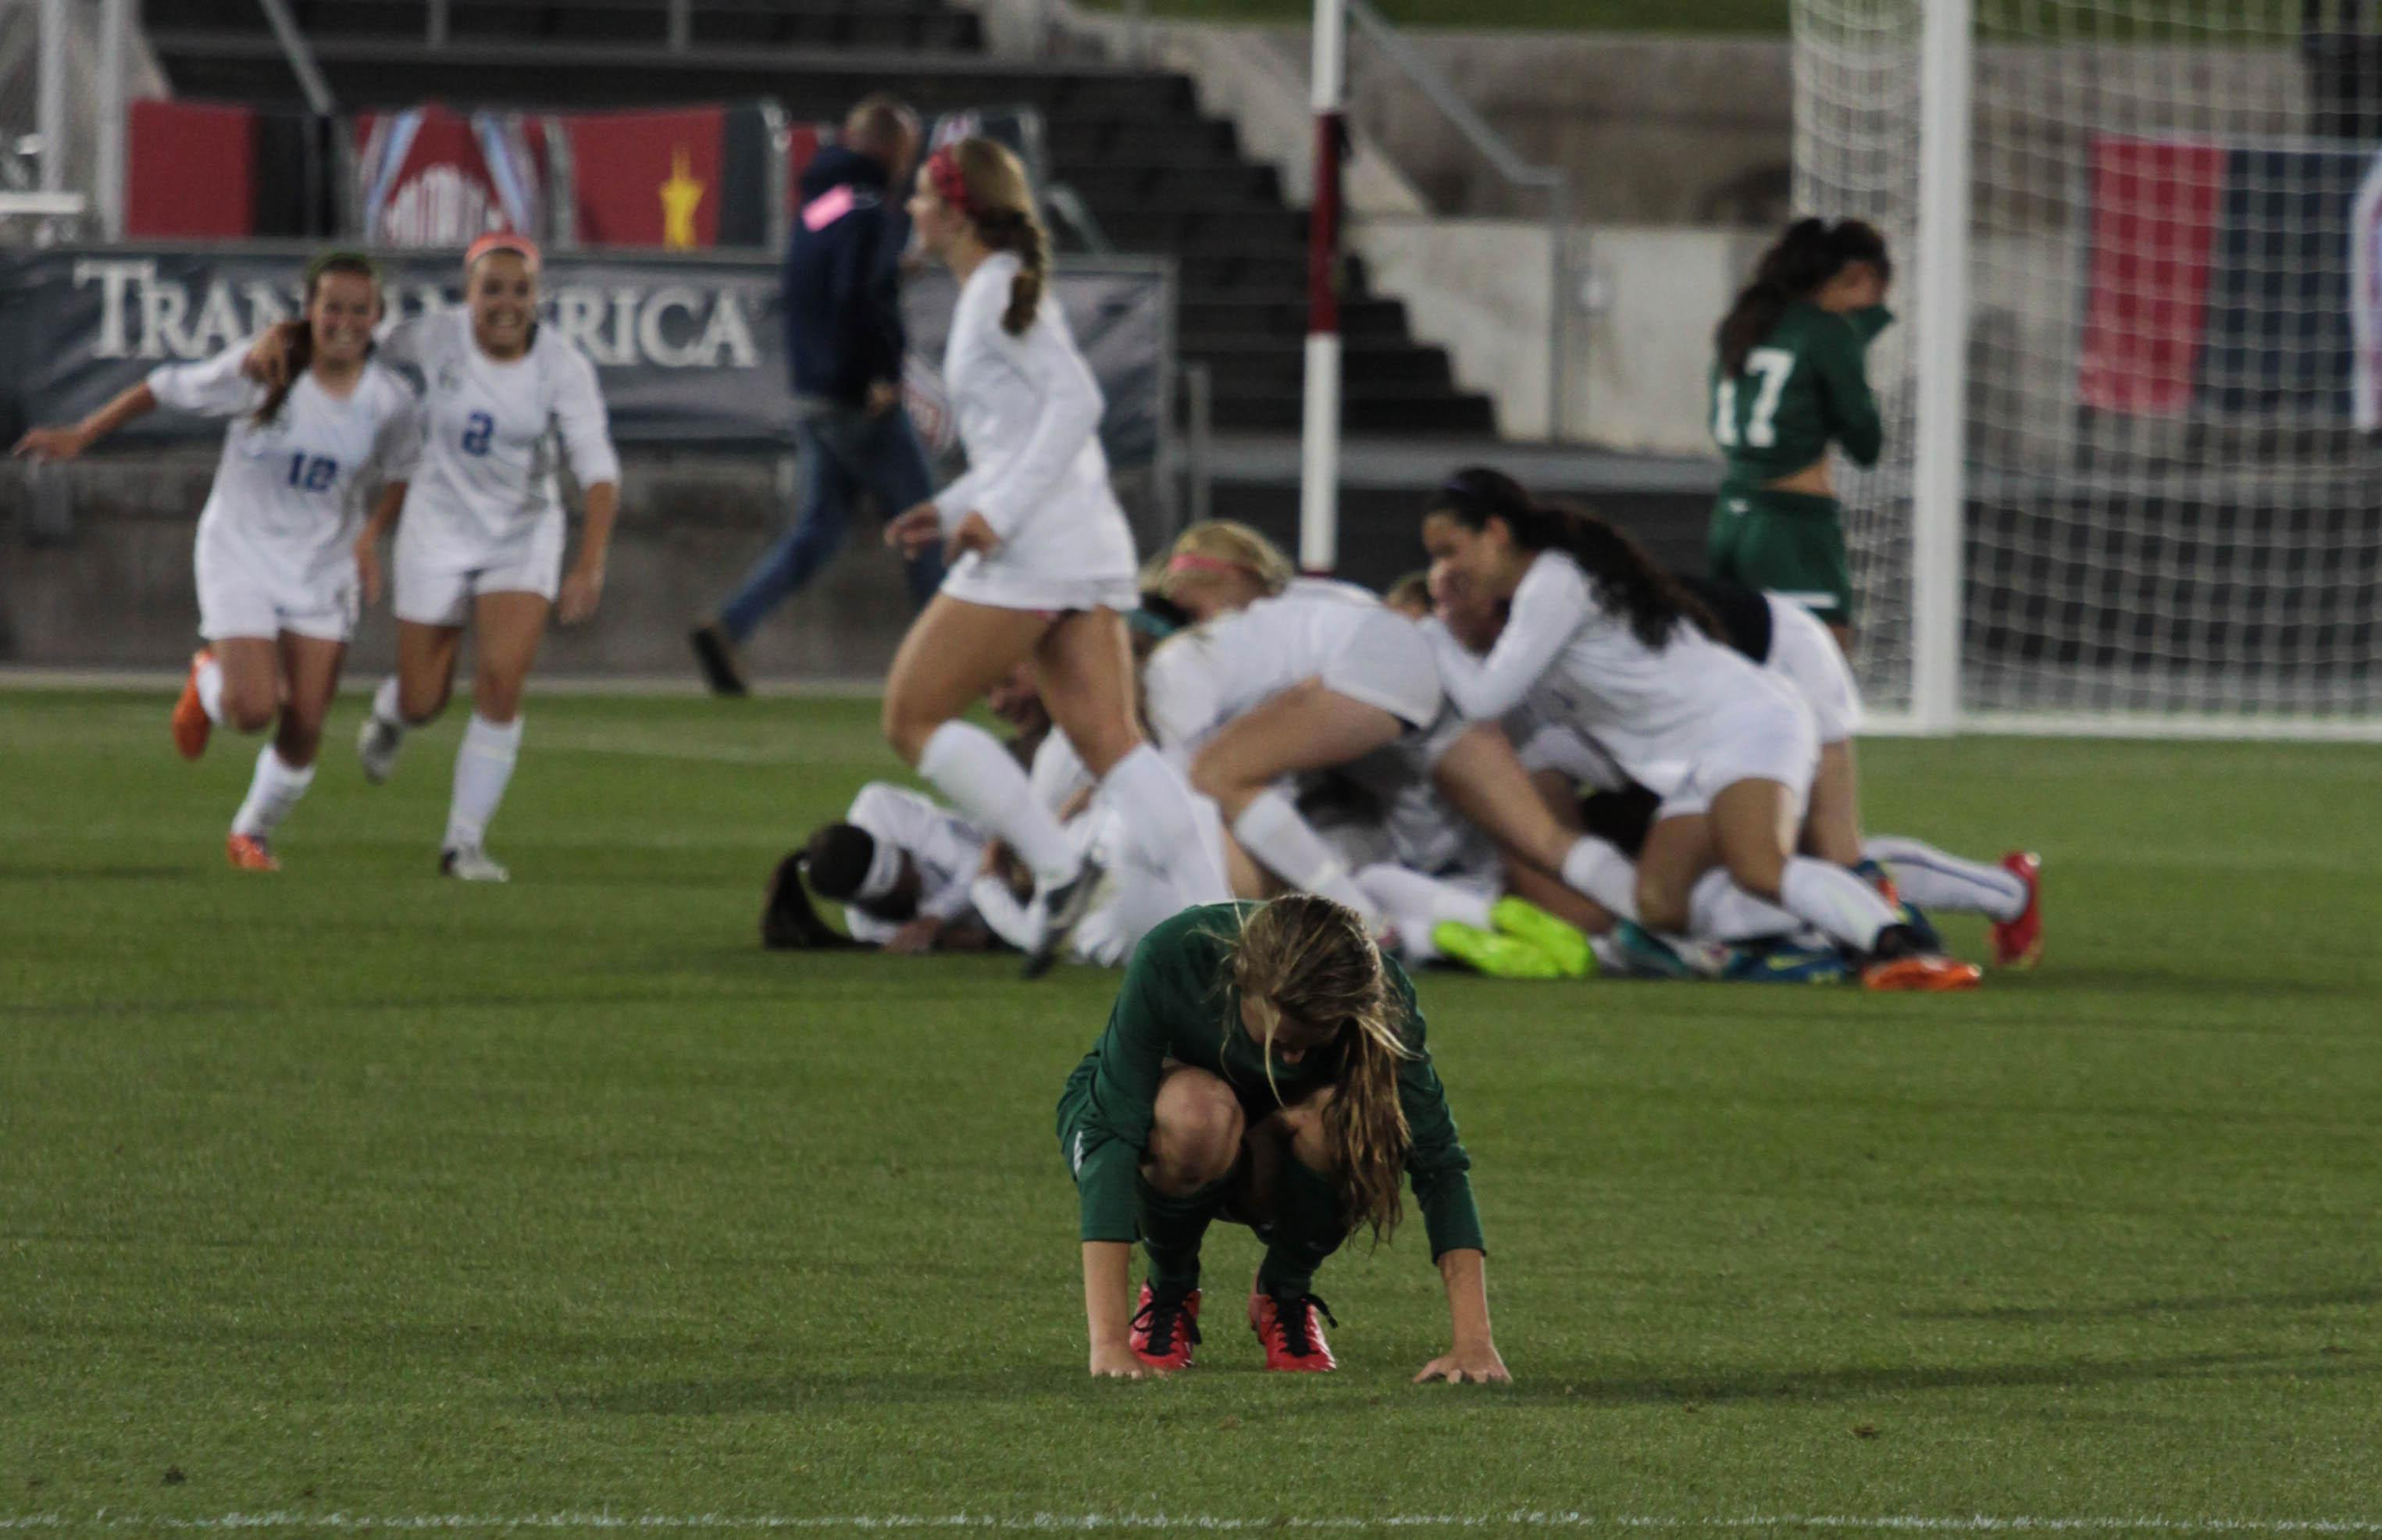 PHOTOS: Women's Soccer State Championship